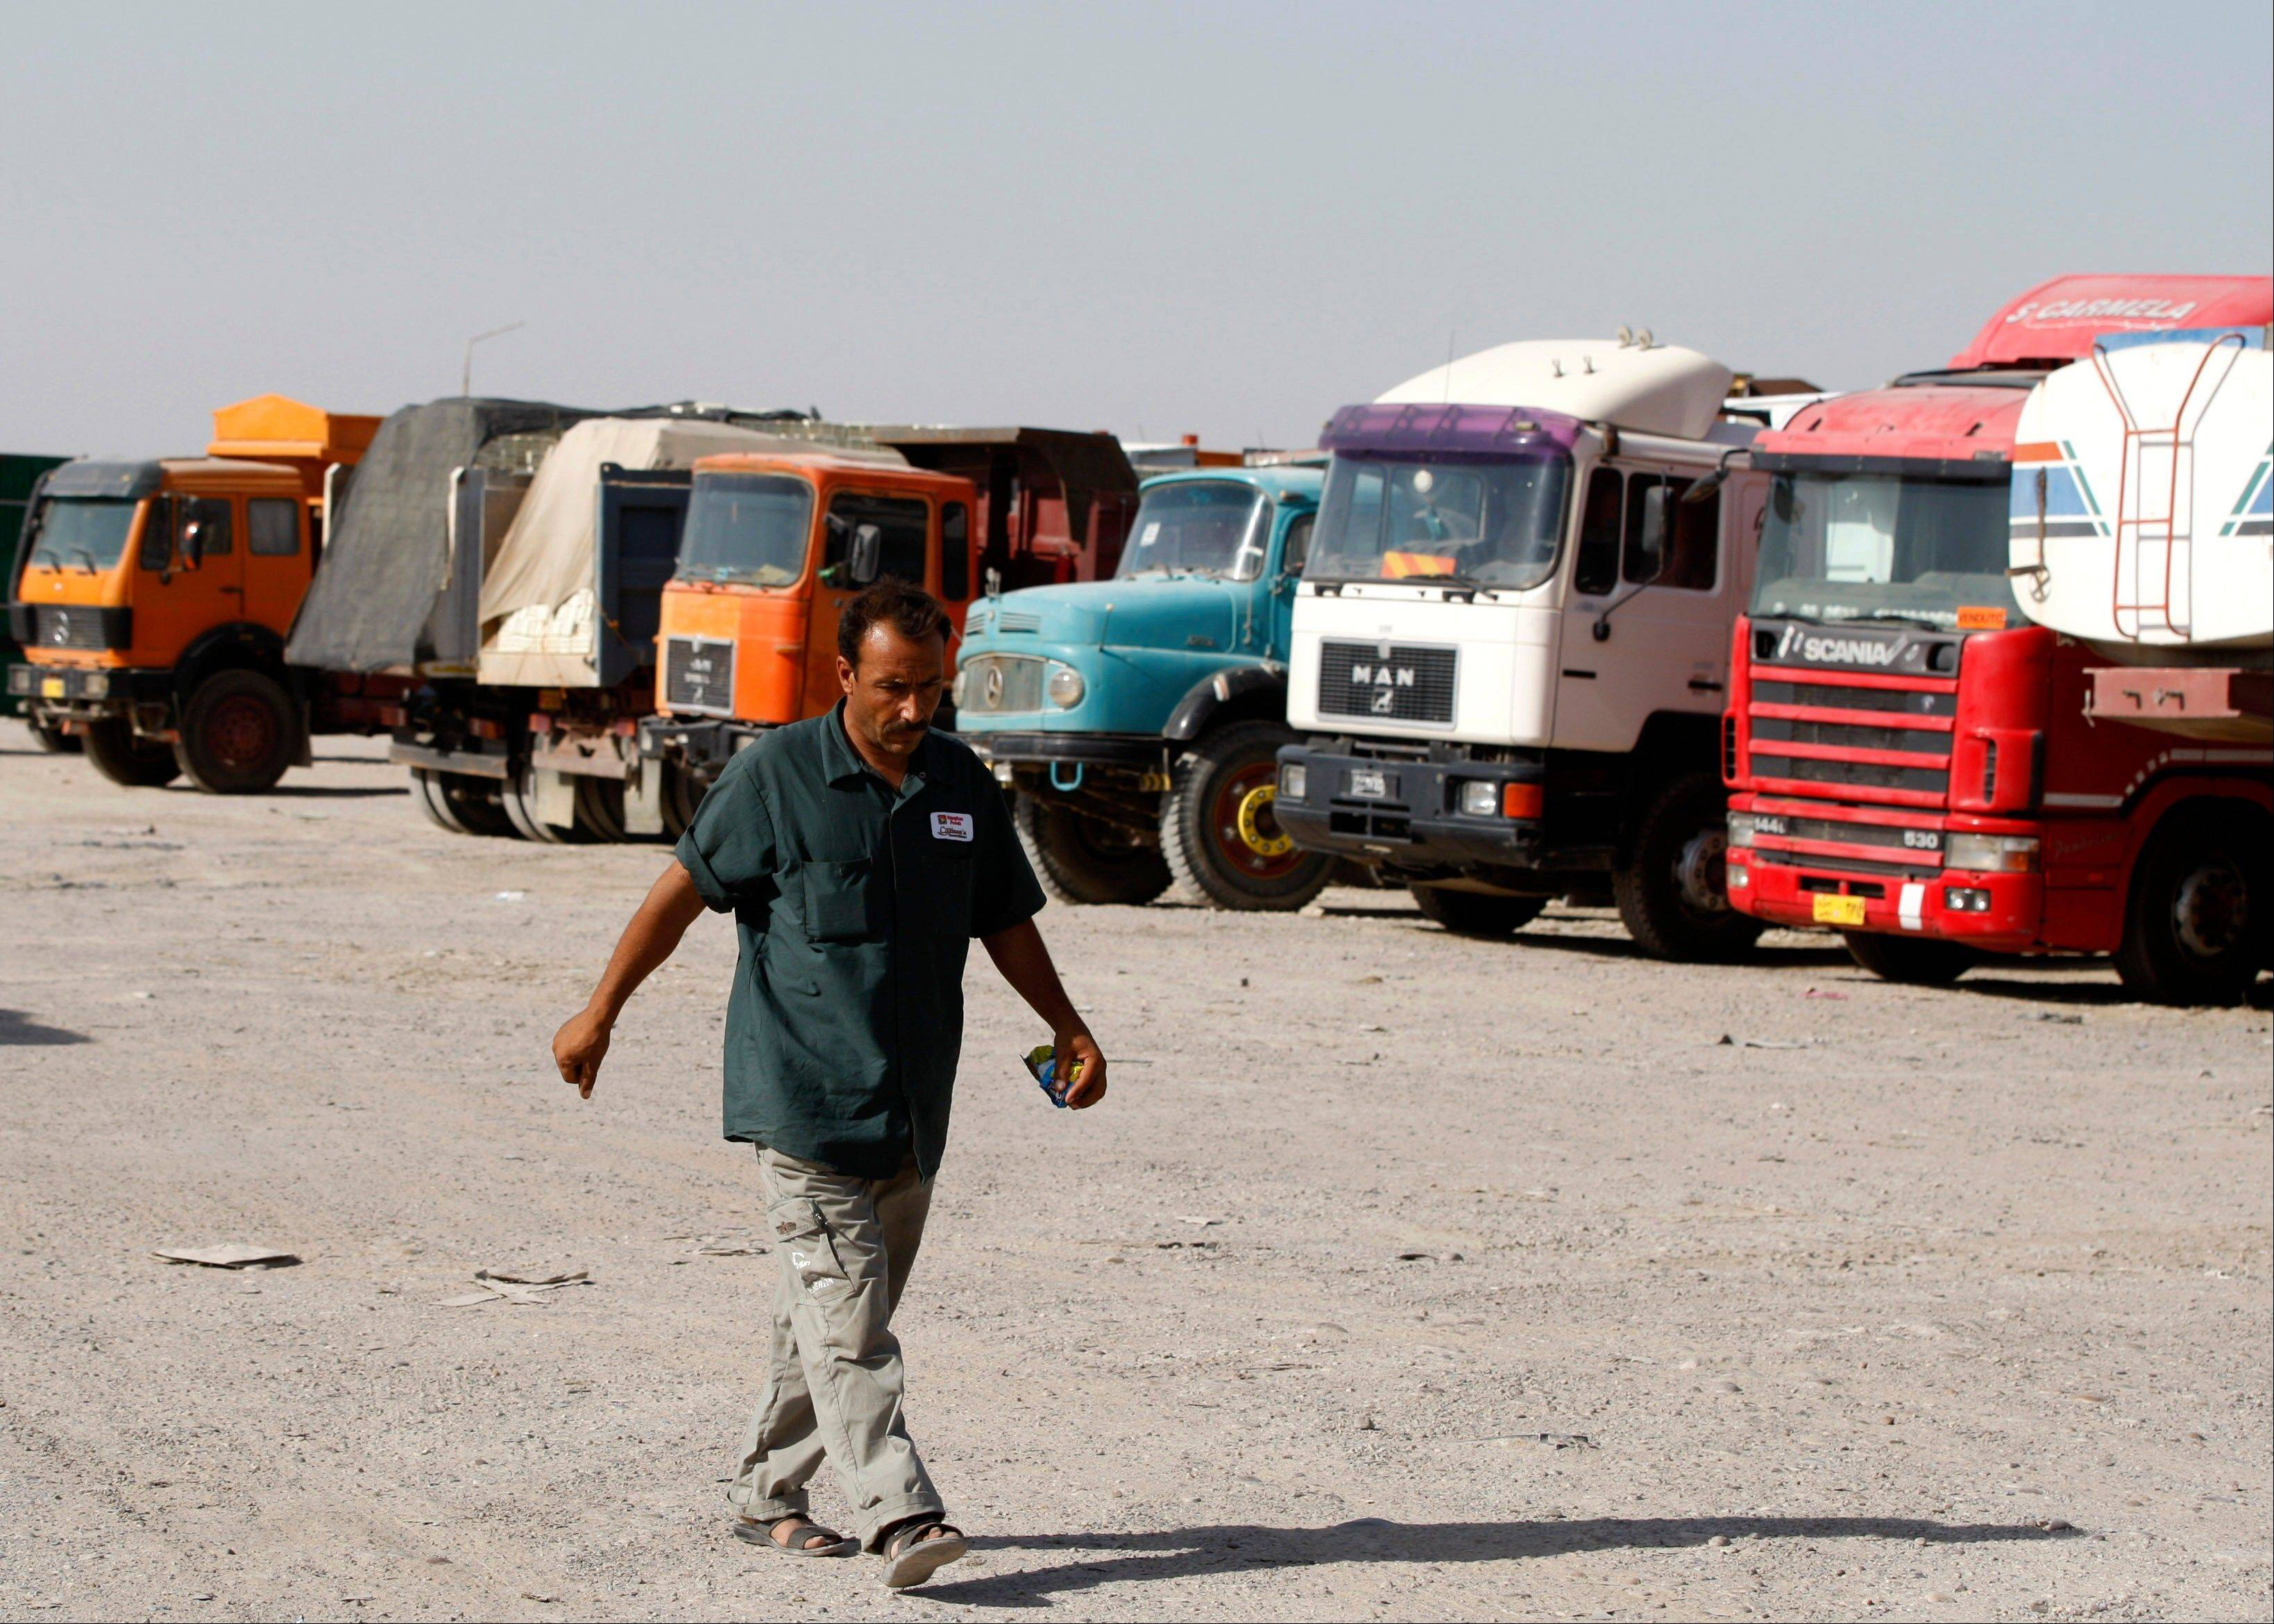 A truck driver walks past trucks in a truck yard in the capital's western Sunni-dominated Ghazaliyah neighborhood. A spike in violence is spilling over to Iraq's struggling economy, with an increasingly murky future making customers reluctant to spend and the re-emergence of sectarian threats forcing costly changes to the way business is done.